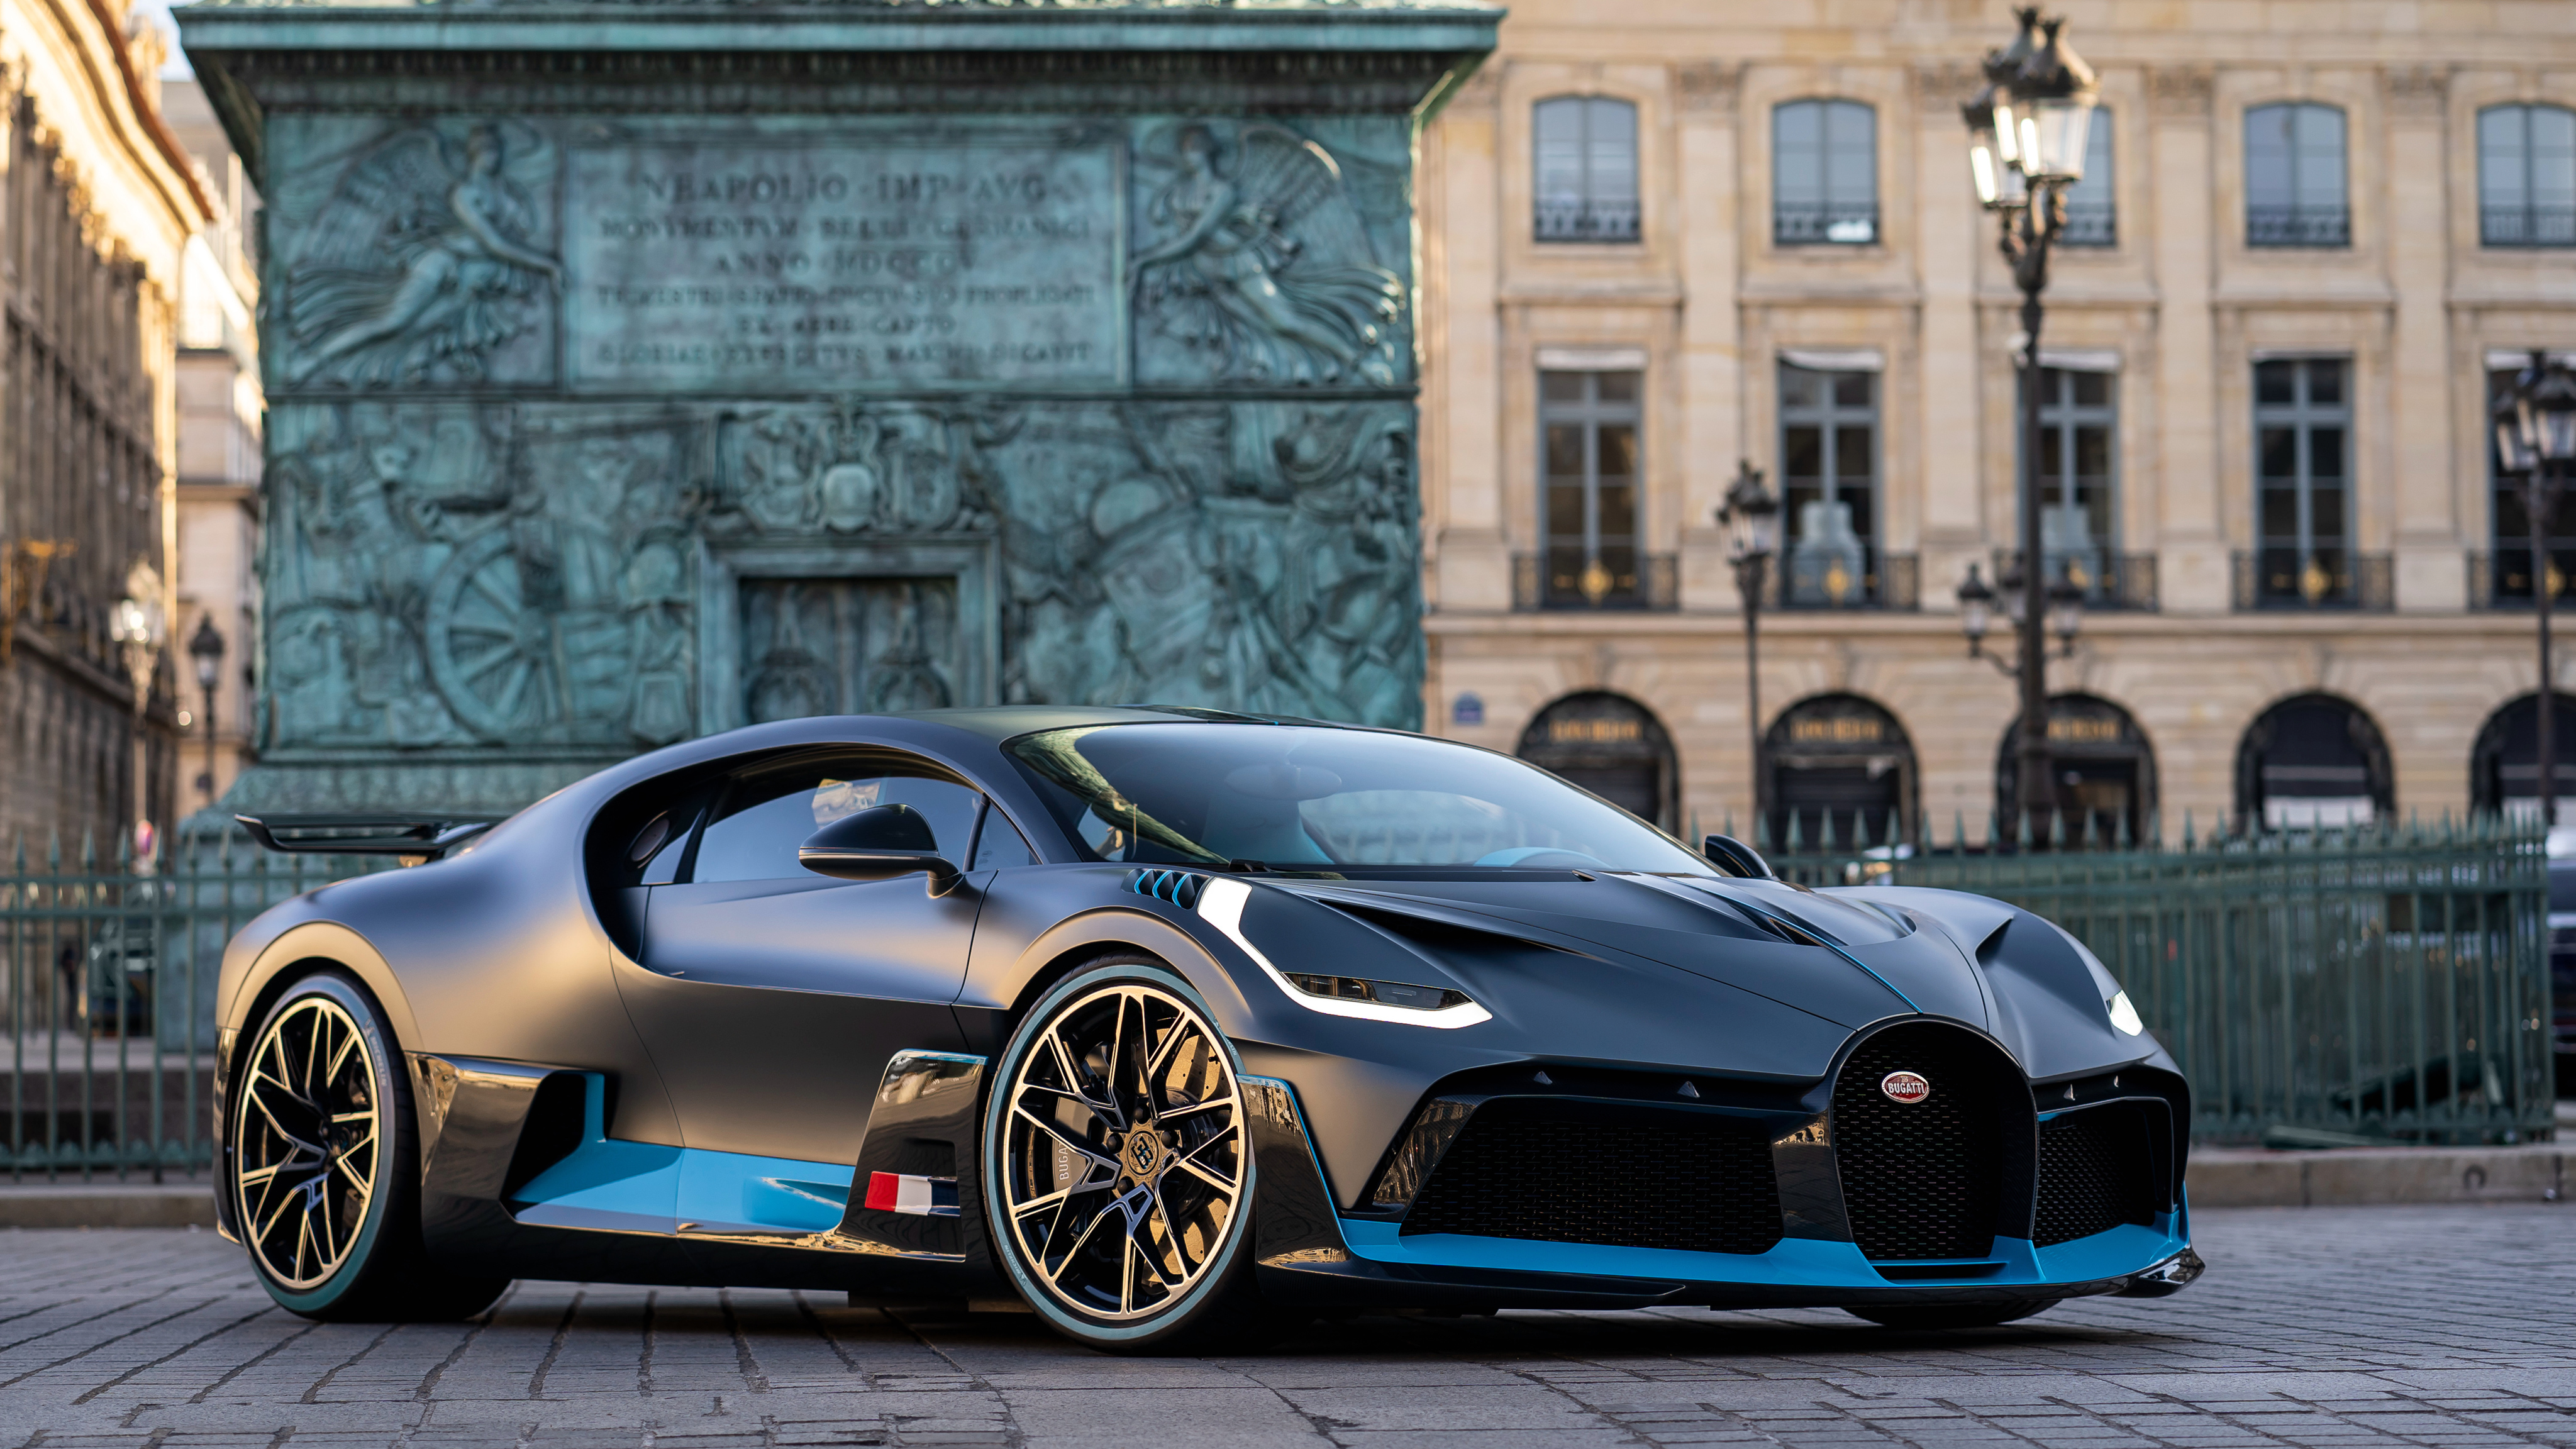 2018 Bugatti Divo Front 4k Hd Cars 4k Wallpapers Images